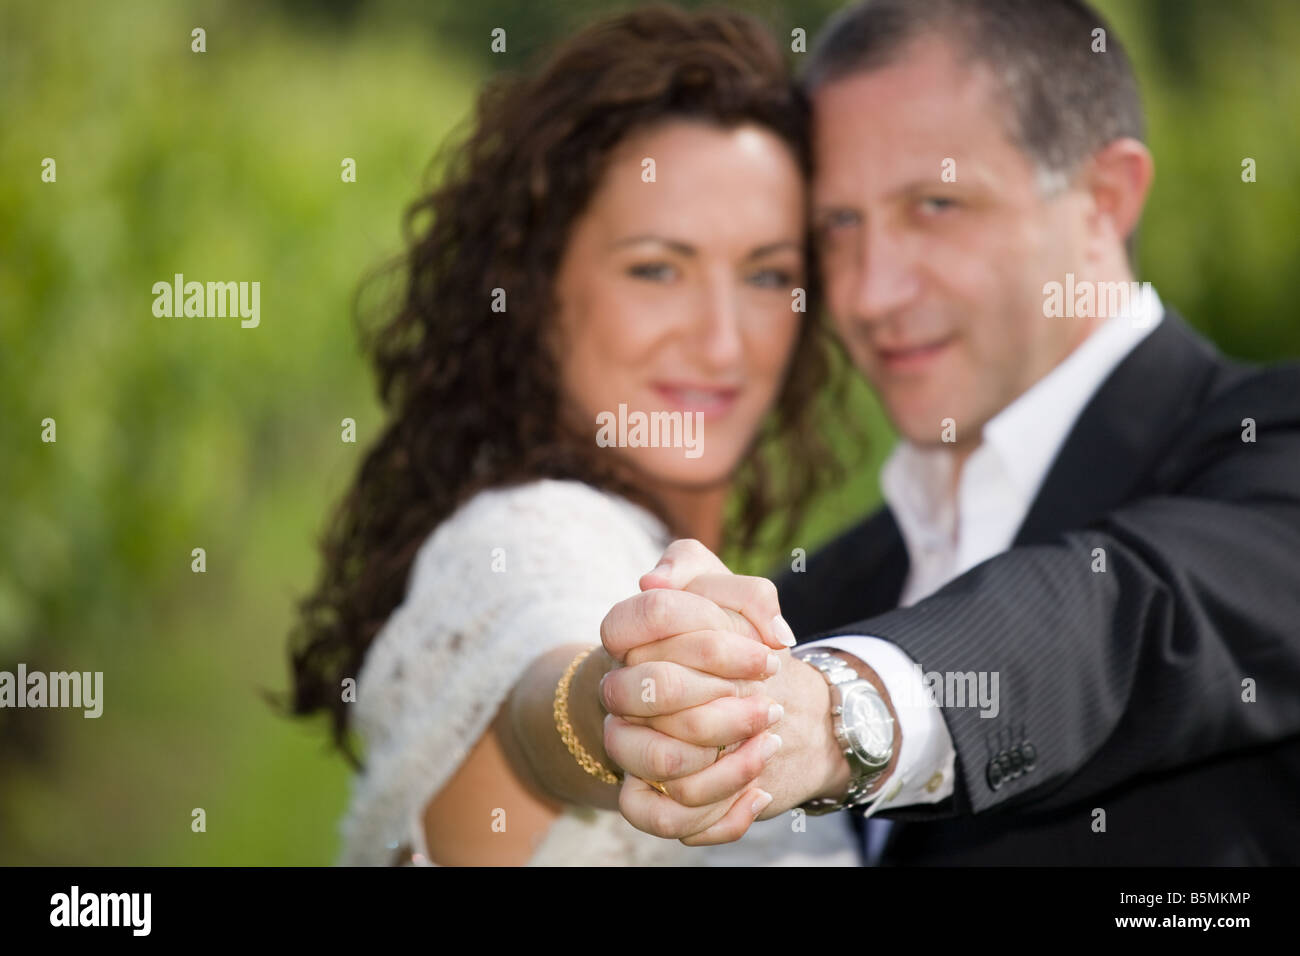 bride and groom hands joined, outdoor shot - Stock Image